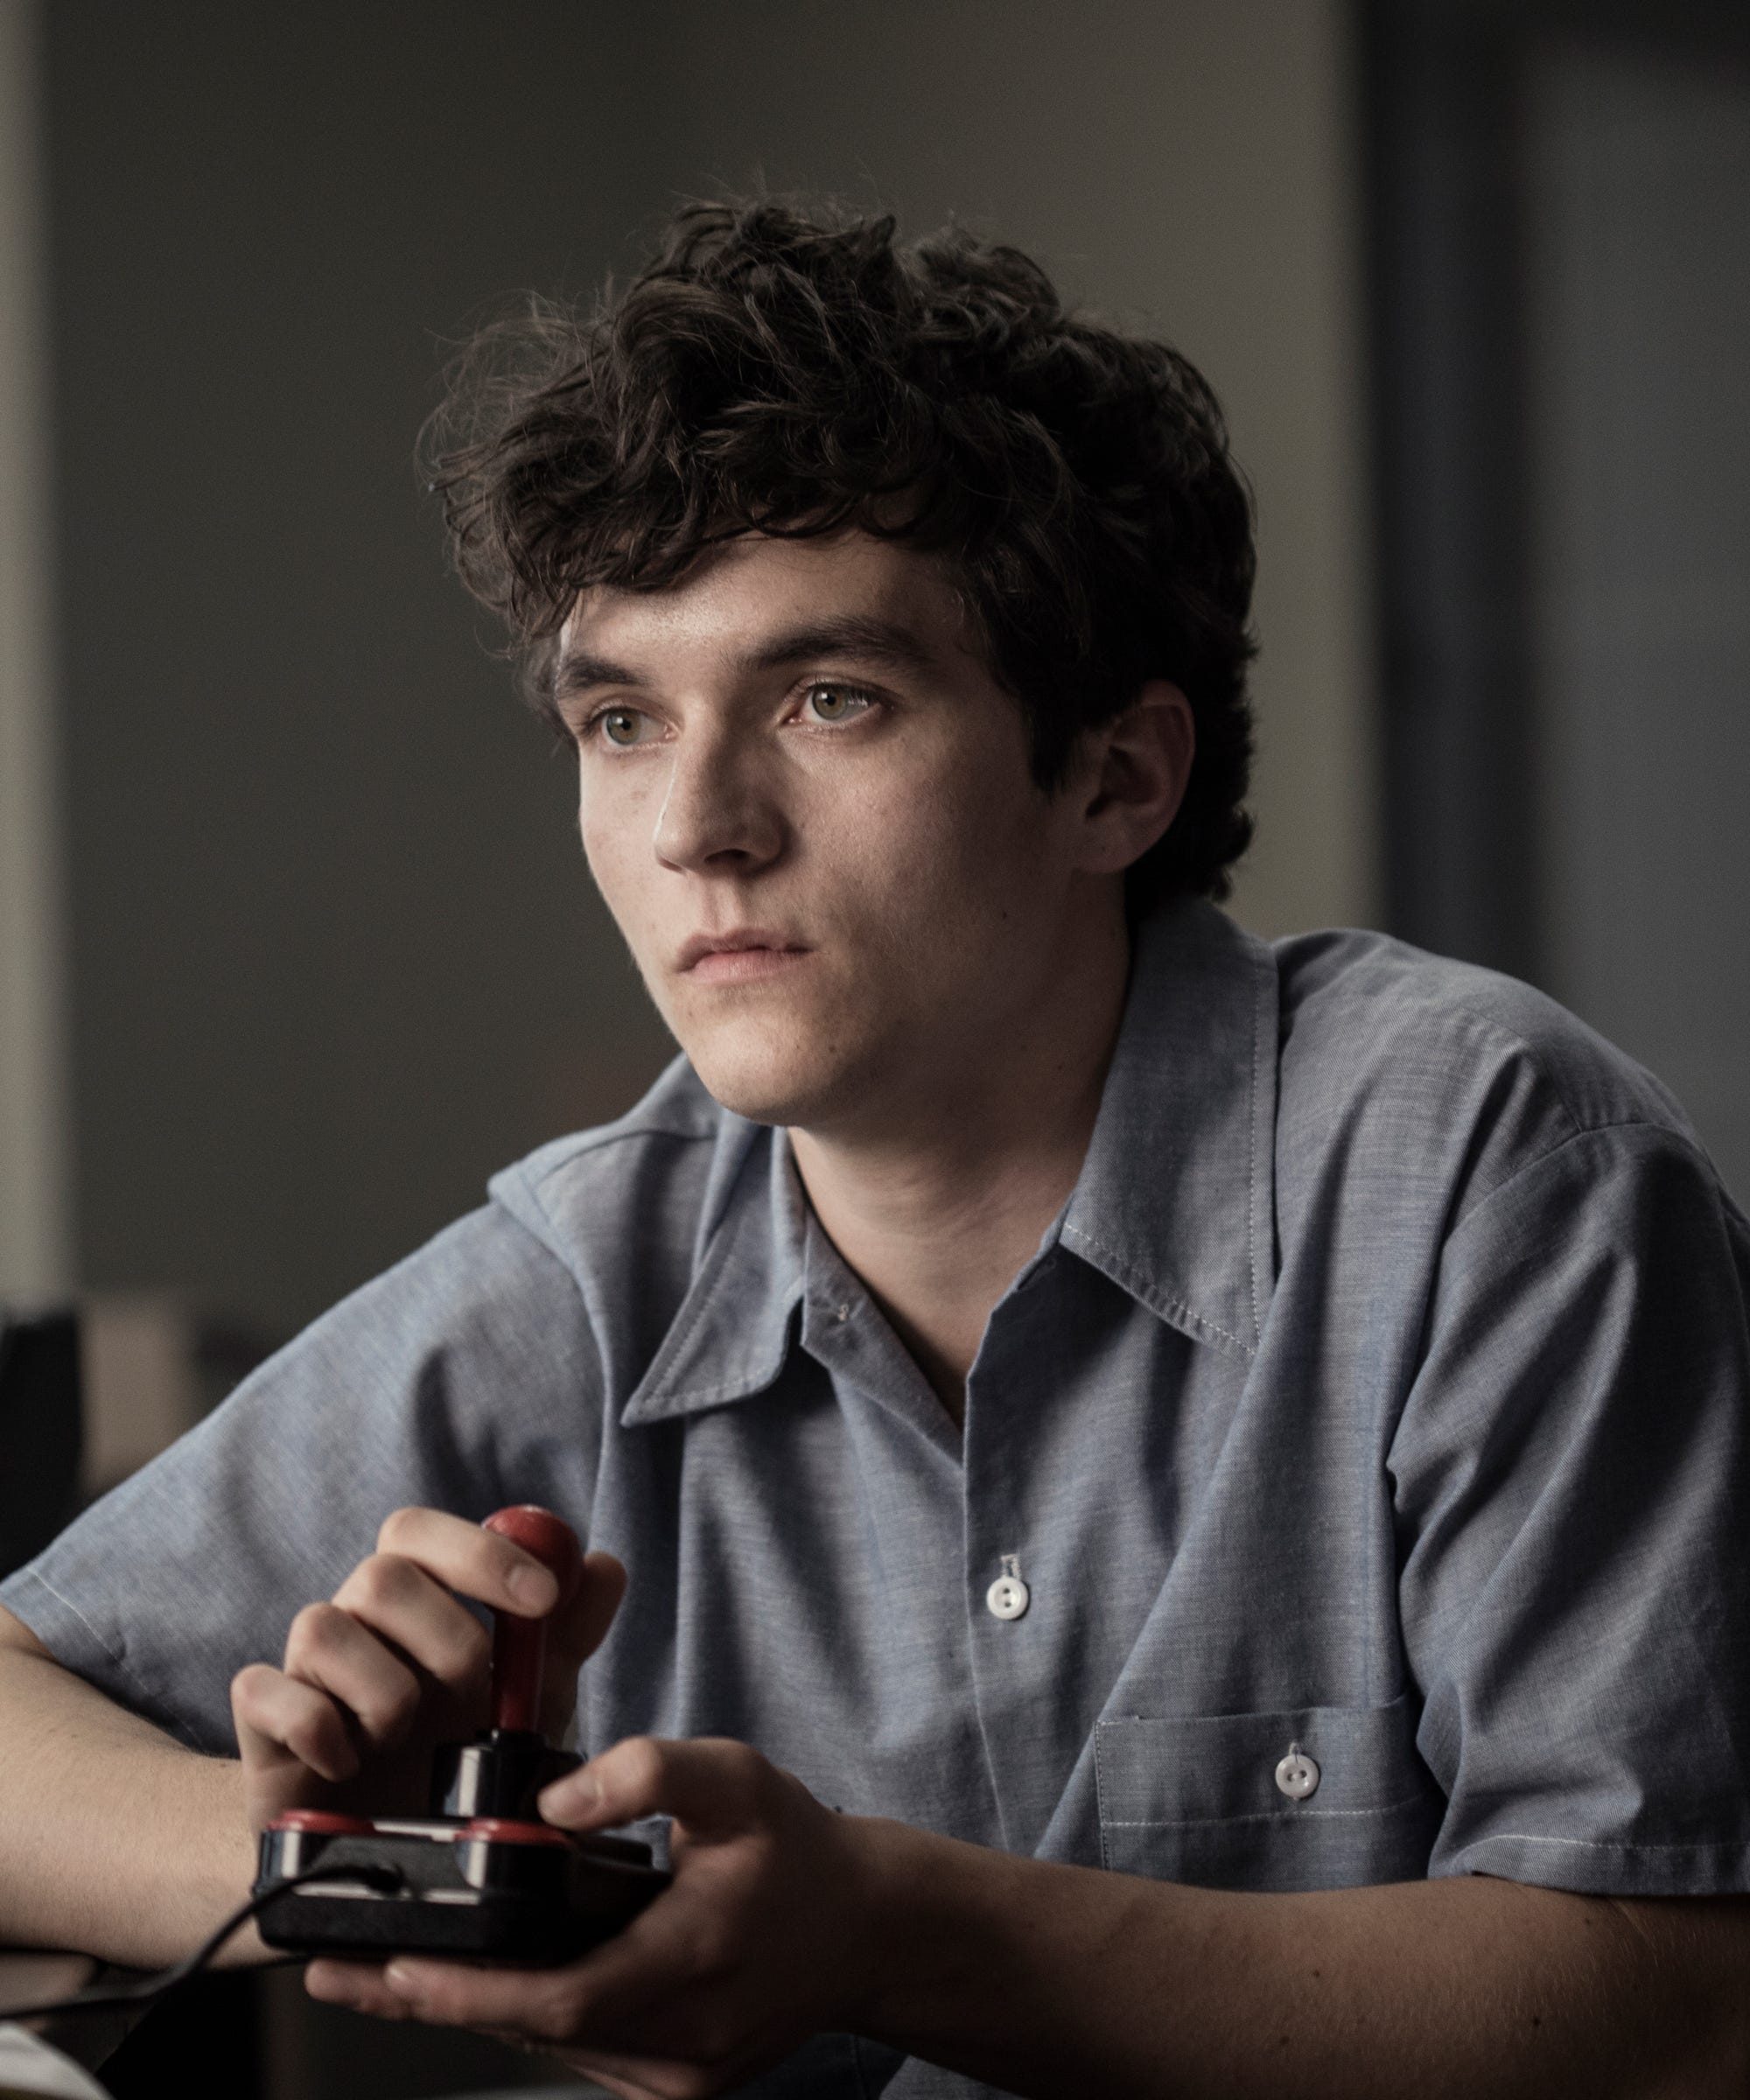 Bandersnatch Therapist Phone Number Code, Explained